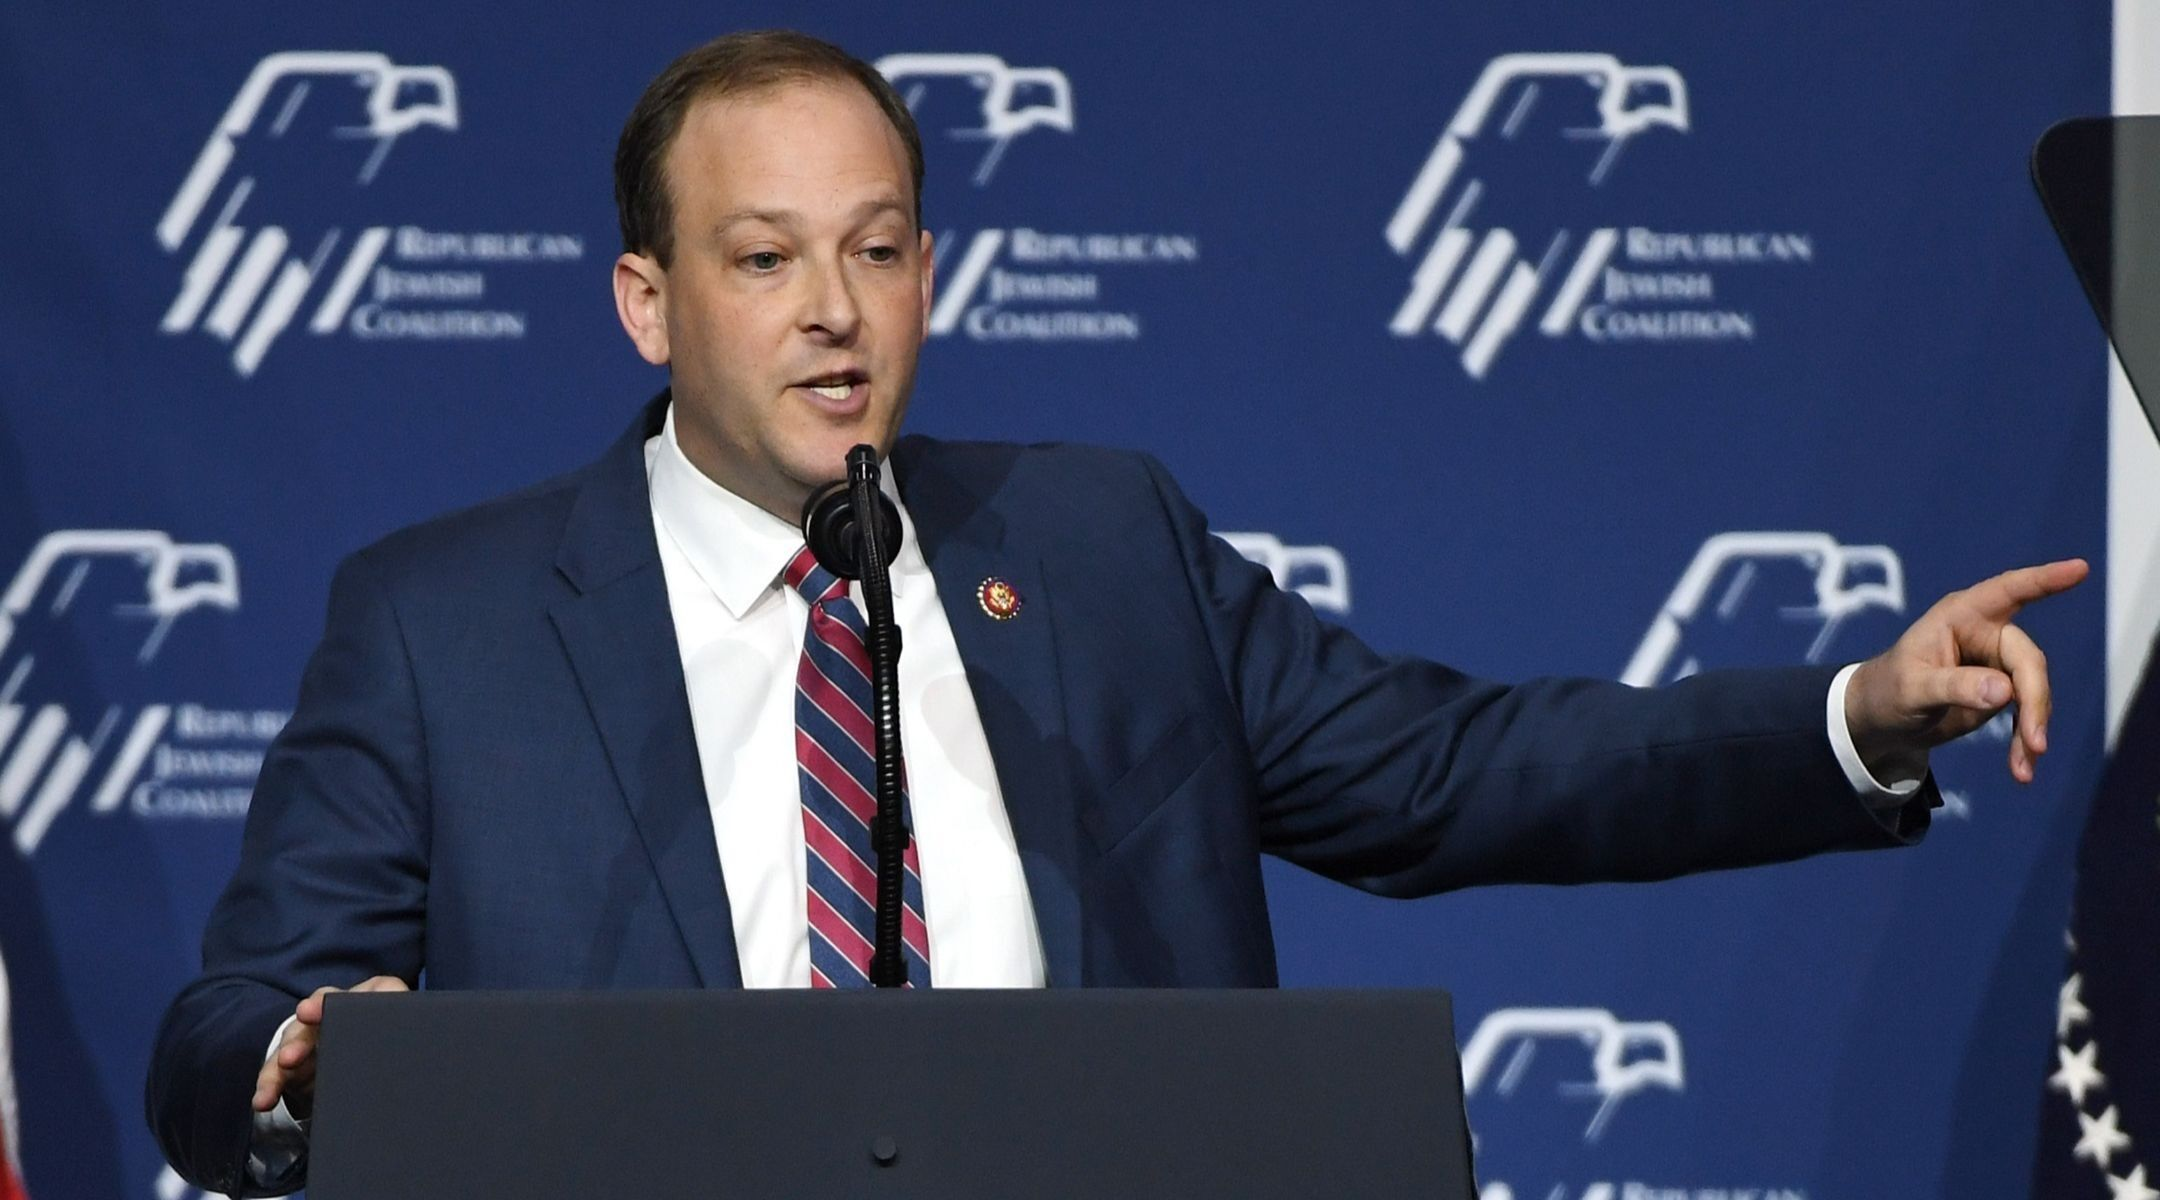 Rep. Lee Zeldin, R-NY, speaks during the Republican Jewish Coalition's annual leadership meeting at The Venetian Las Vegas ahead of an appearance by President Donald Trump, April 6, 2019. (Photo/JTA-Getty Images-Ethan Miller)